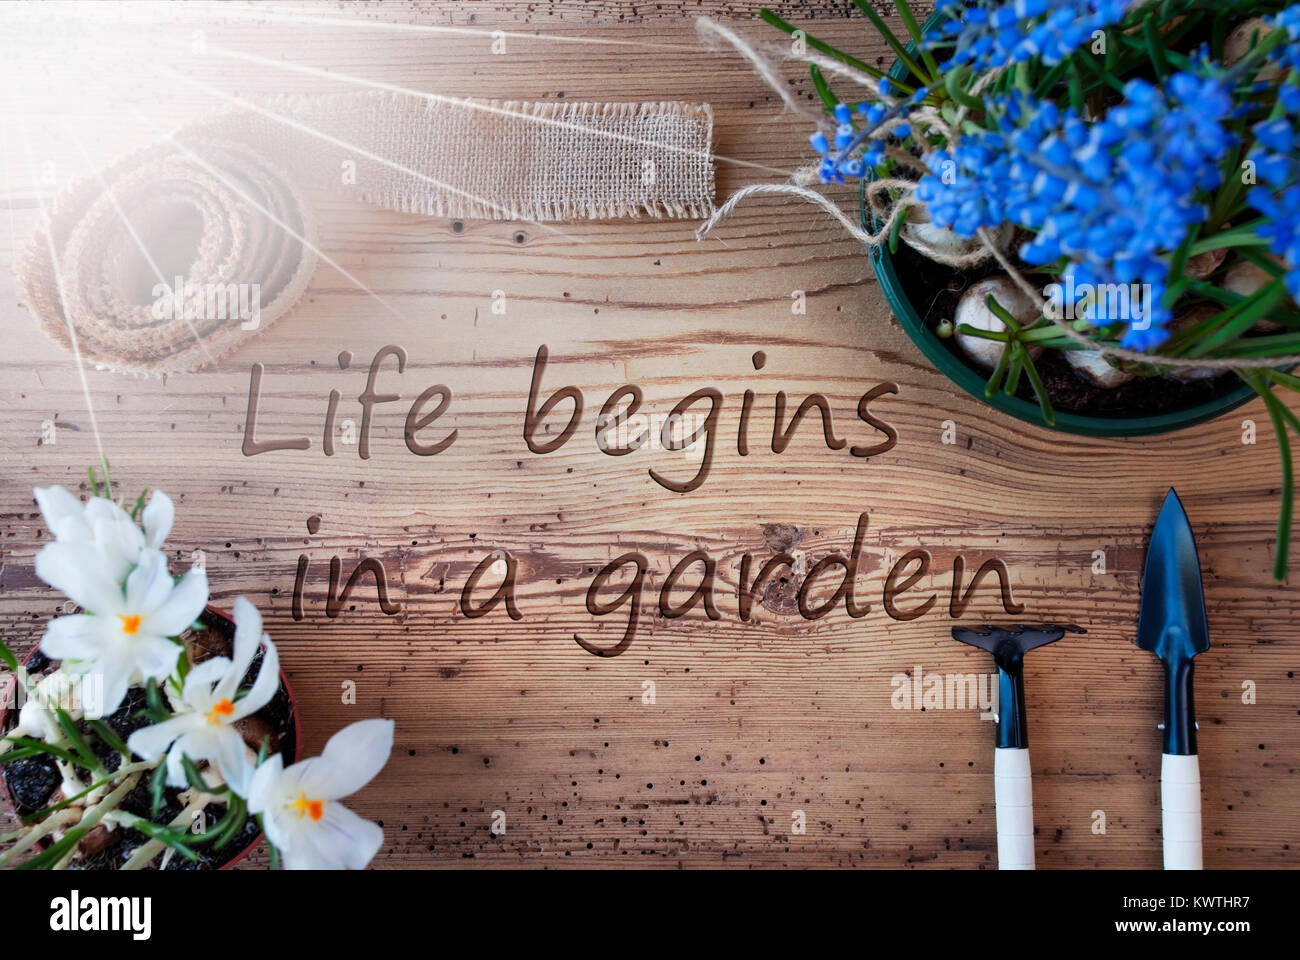 Image of: Swindoll English Quote Life Begins In Garden Sunny Spring Flowers Like Grape Hyacinth And Crocus Gardening Tools Like Rake And Shovel Hemp Fabric Ribbon Alamy English Quote Life Begins In Garden Sunny Spring Flowers Like